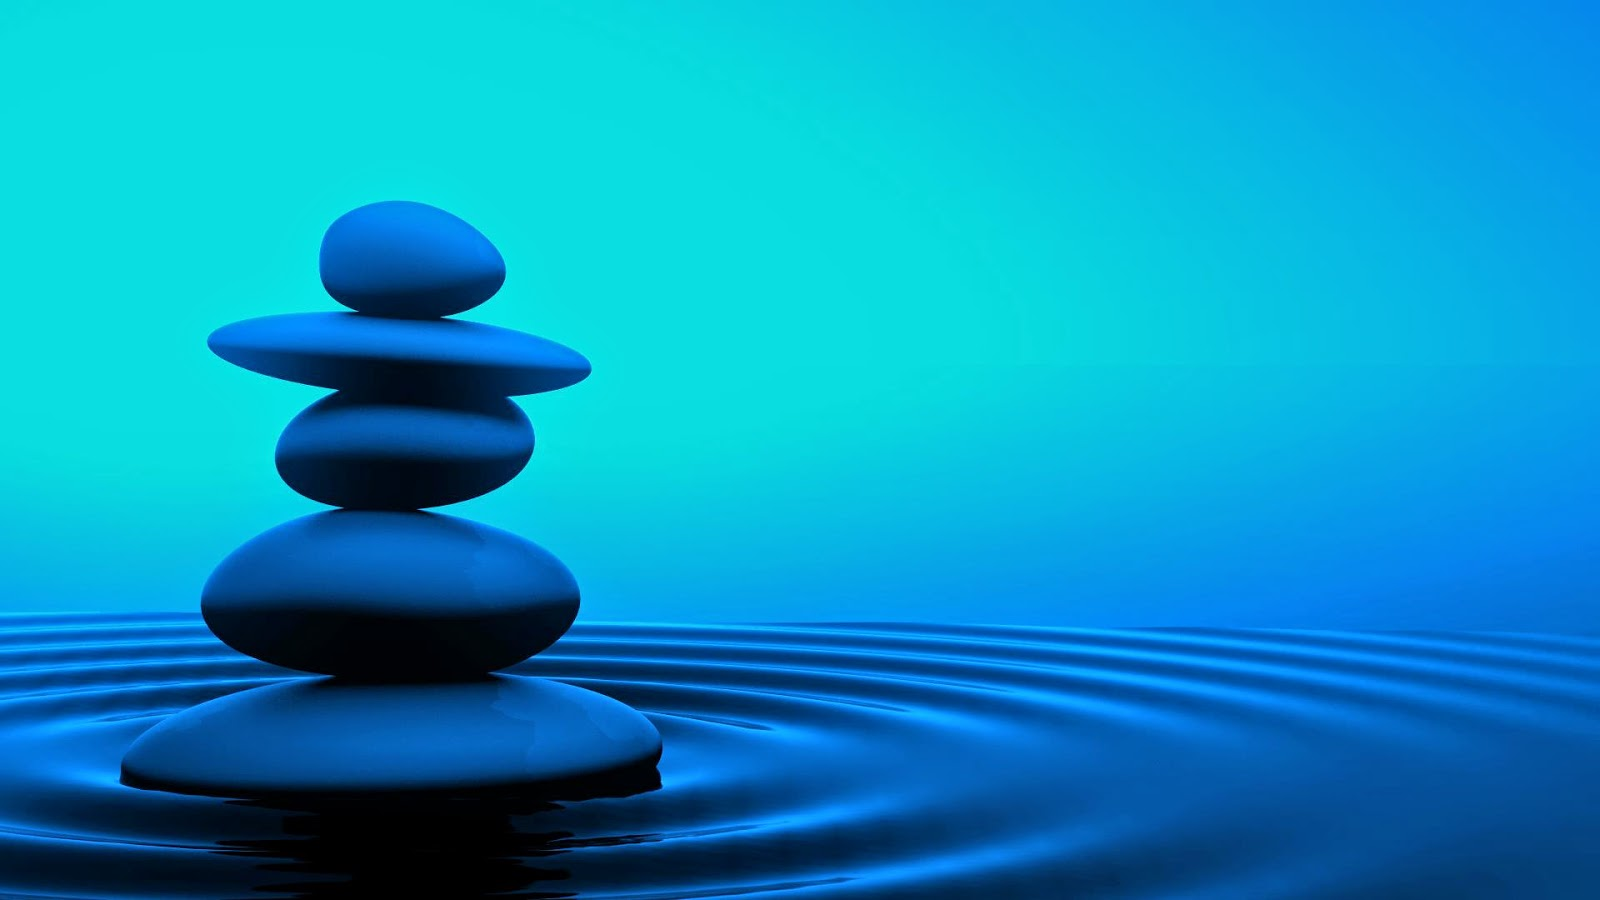 Meditation Desktop Wallpapers and Images for your Phone secreen 1600x900